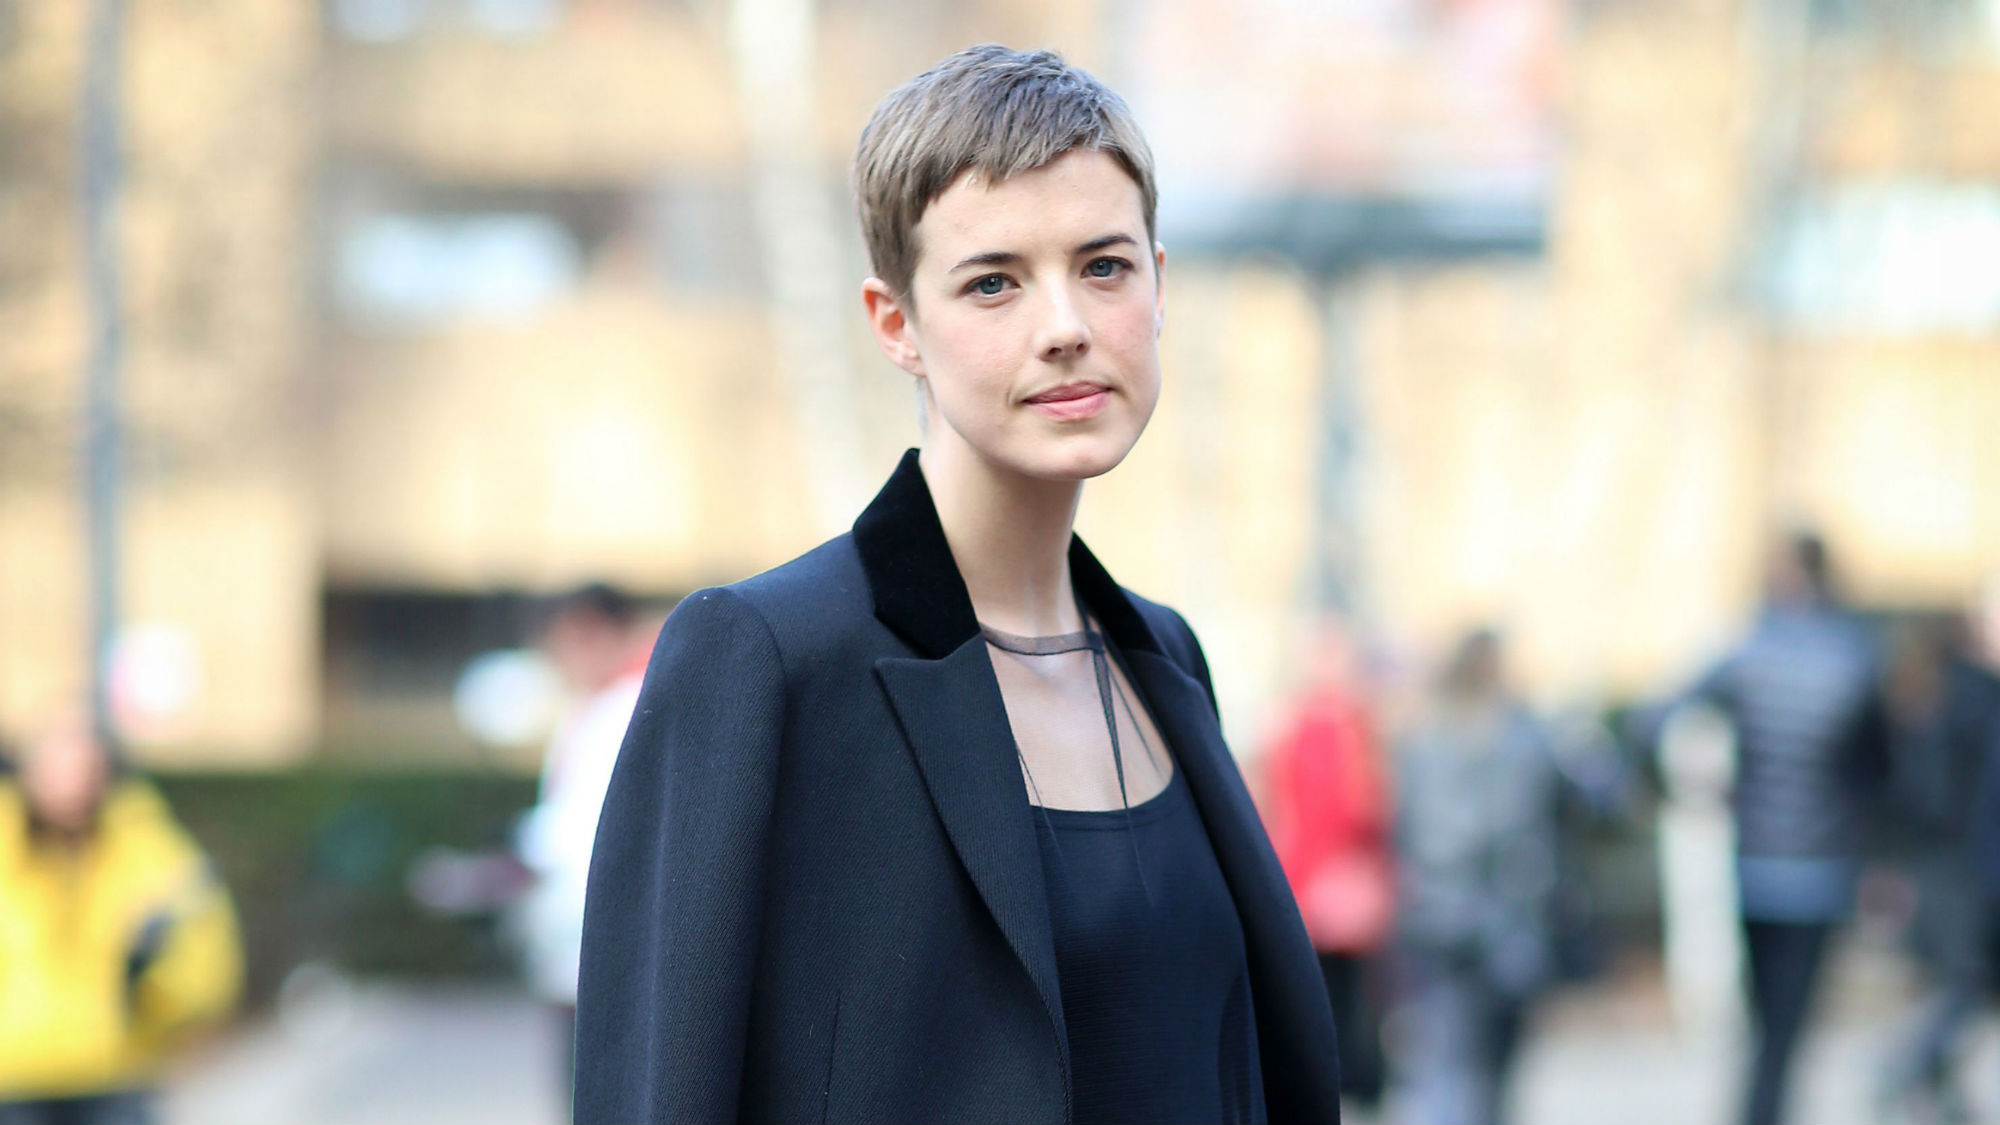 Watch Agyness Deyn opens up about surprise marriage and Scientology rumours video